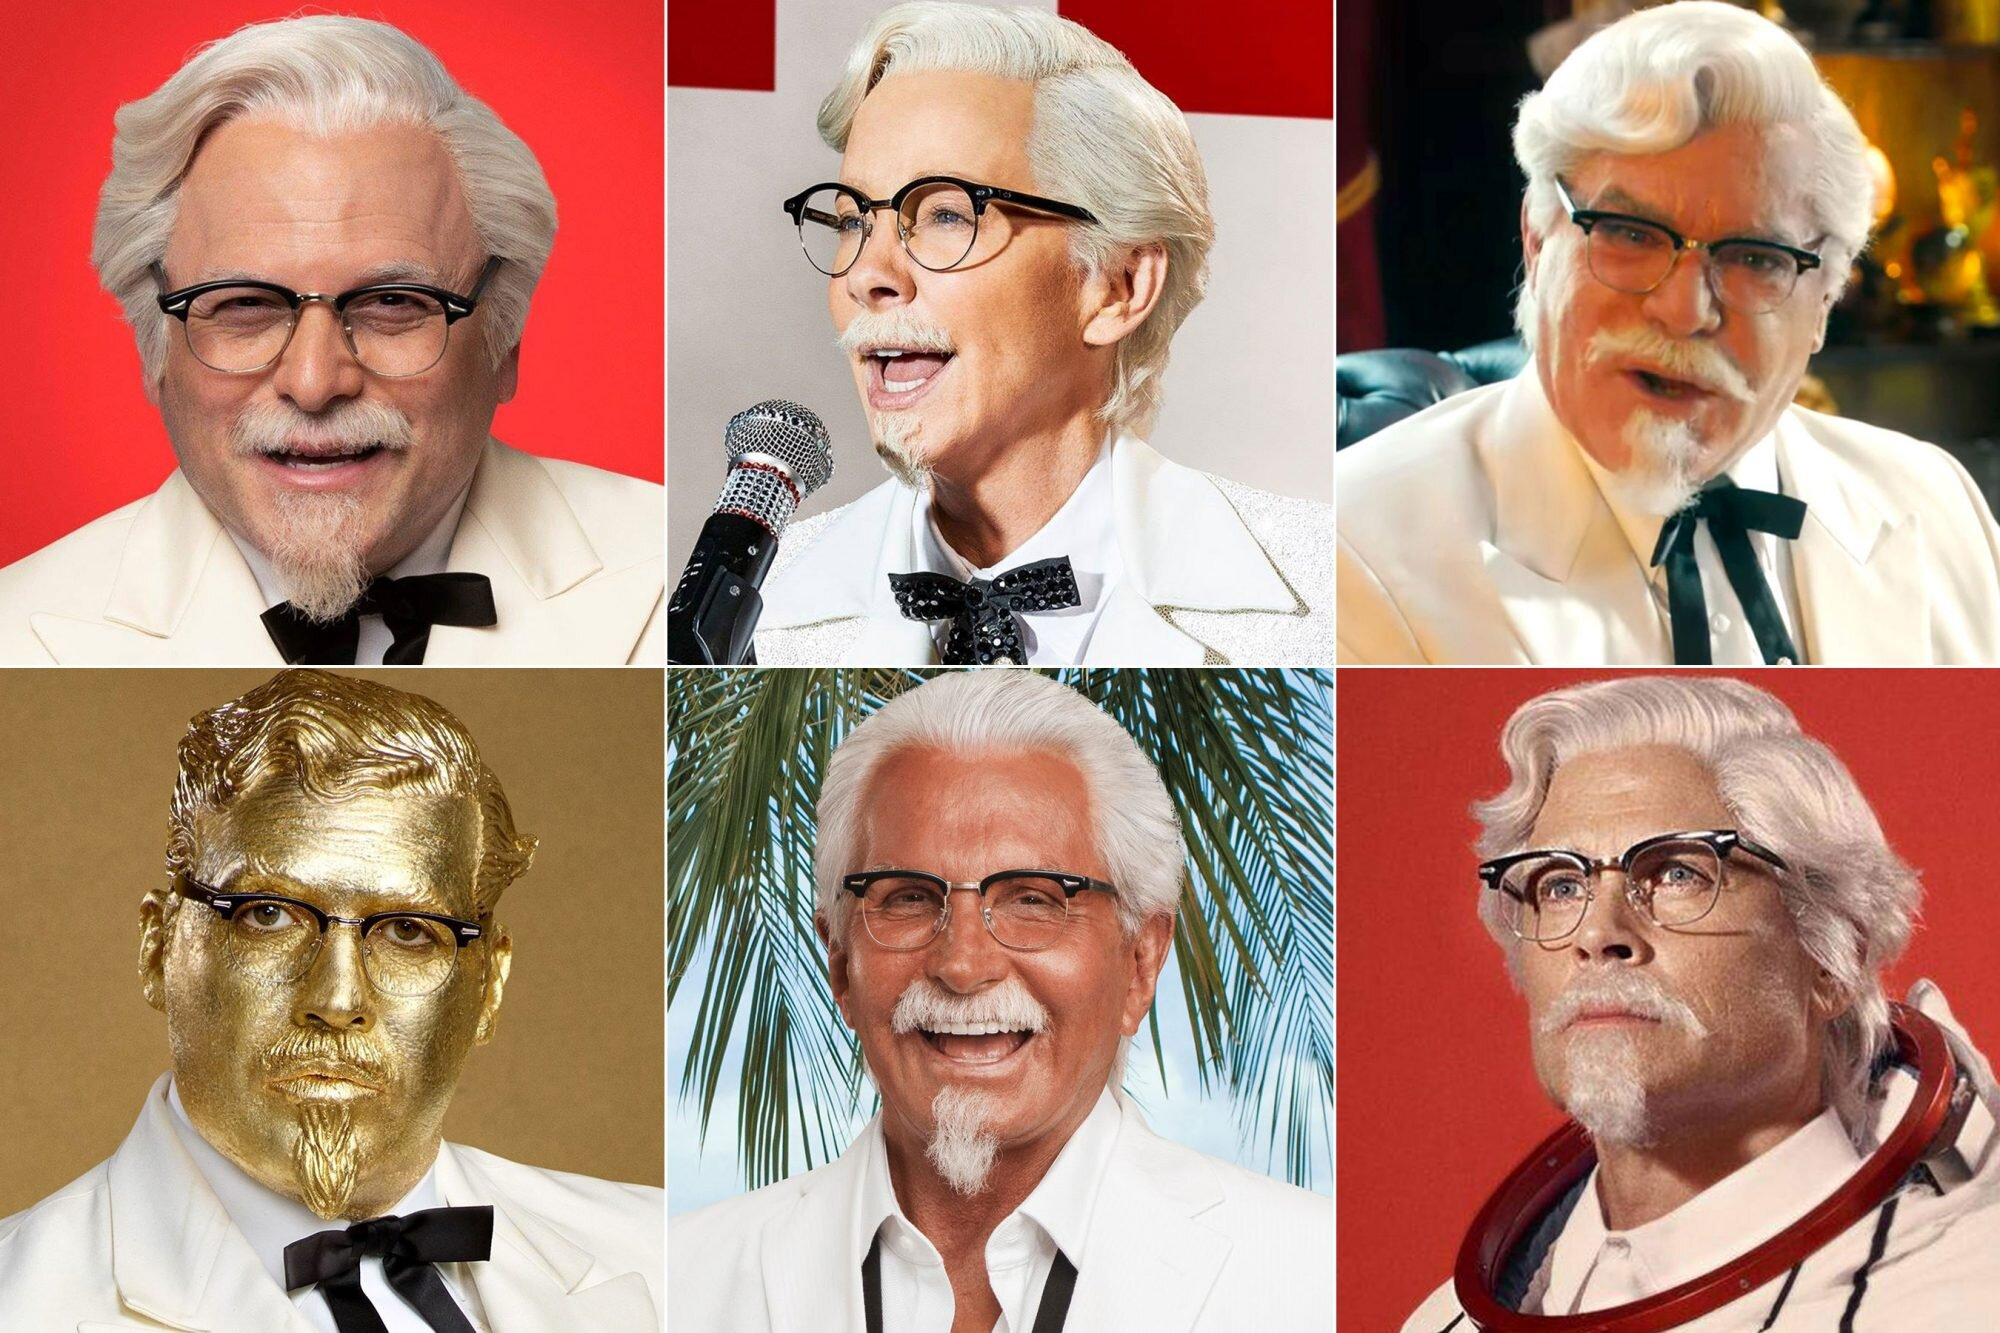 Kfc Christmas Carol Commercial 2020 KFC commercials: Every person who's played Colonel Sanders | EW.com